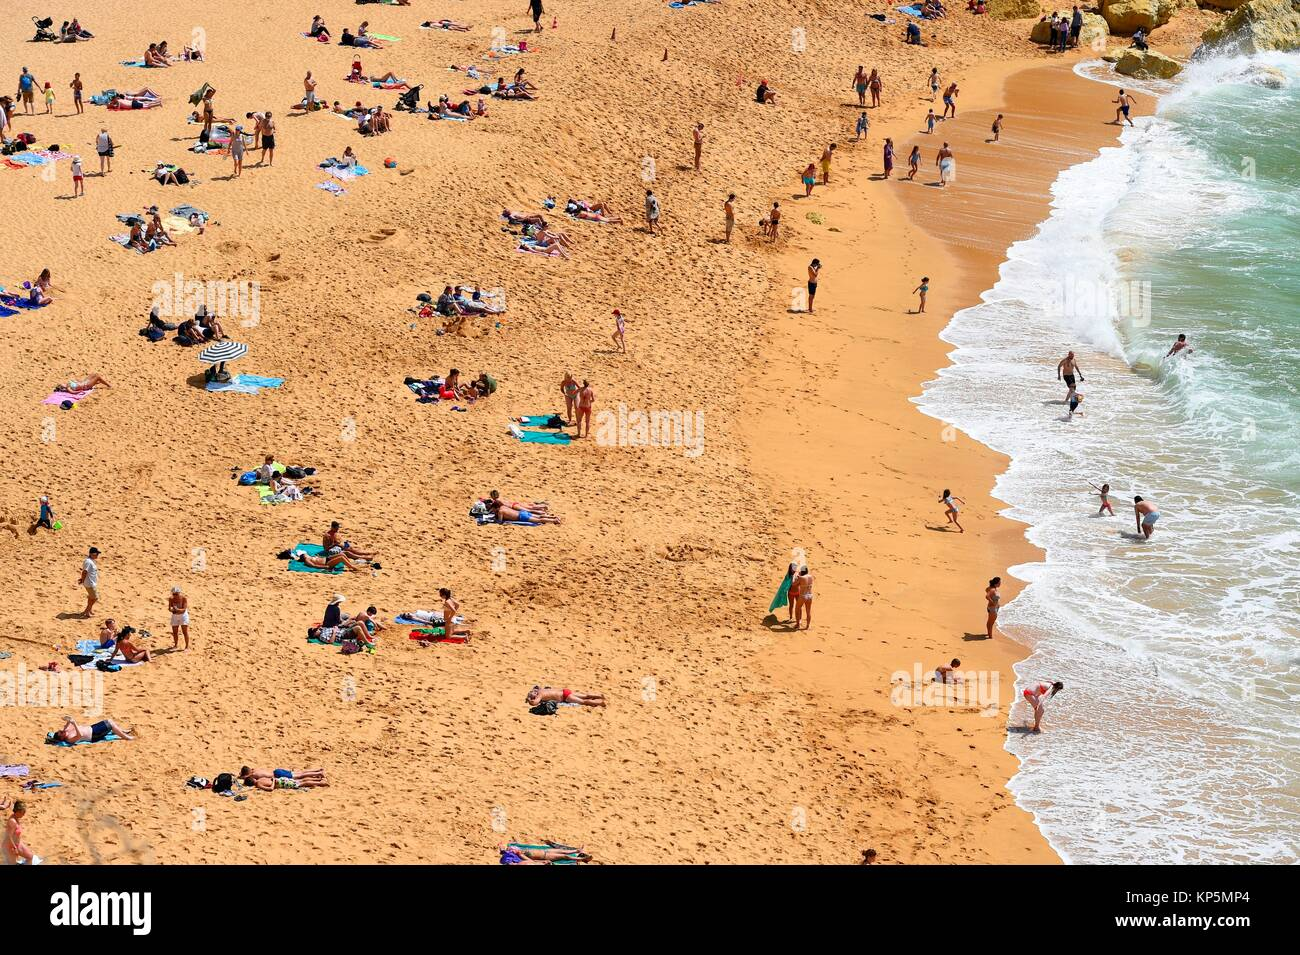 A view of Carvoeiro beach, Algarve, Portugal. Stock Photo